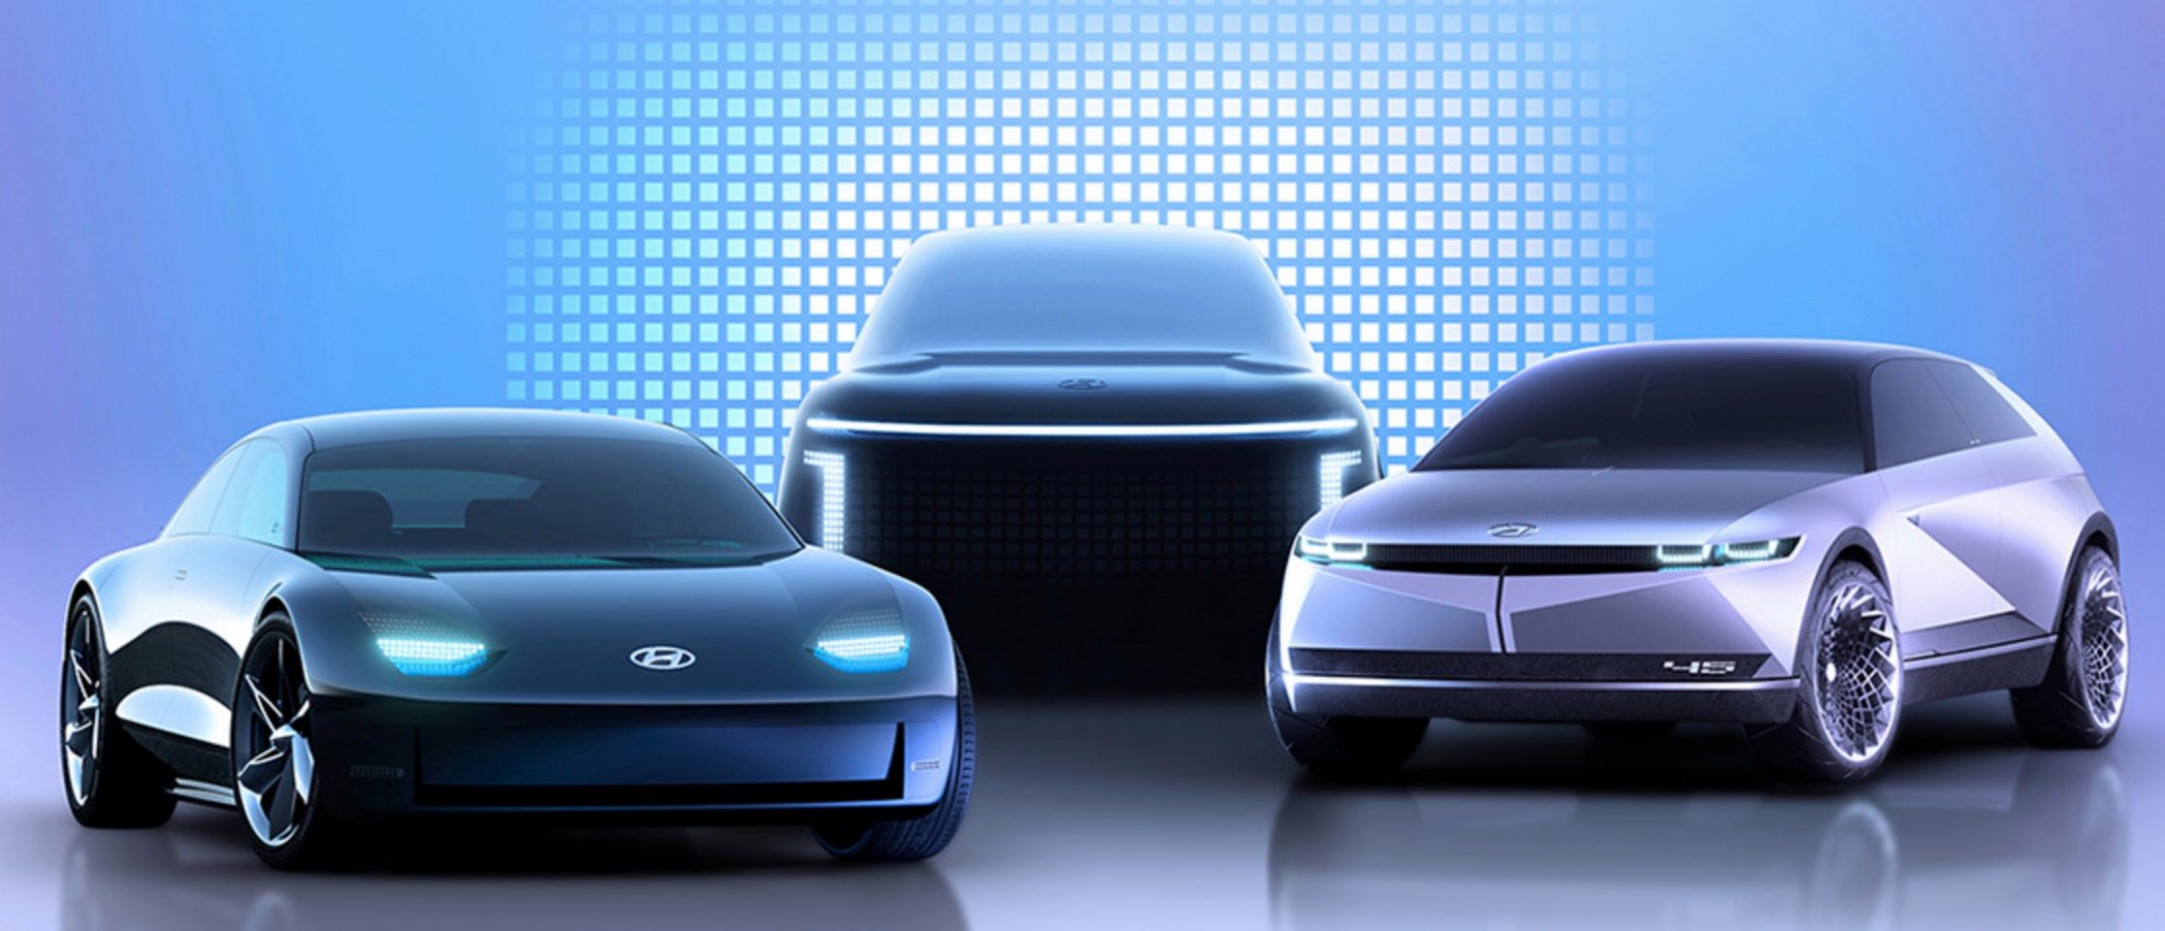 Redesign and Review Hyundai Electric Car 2022